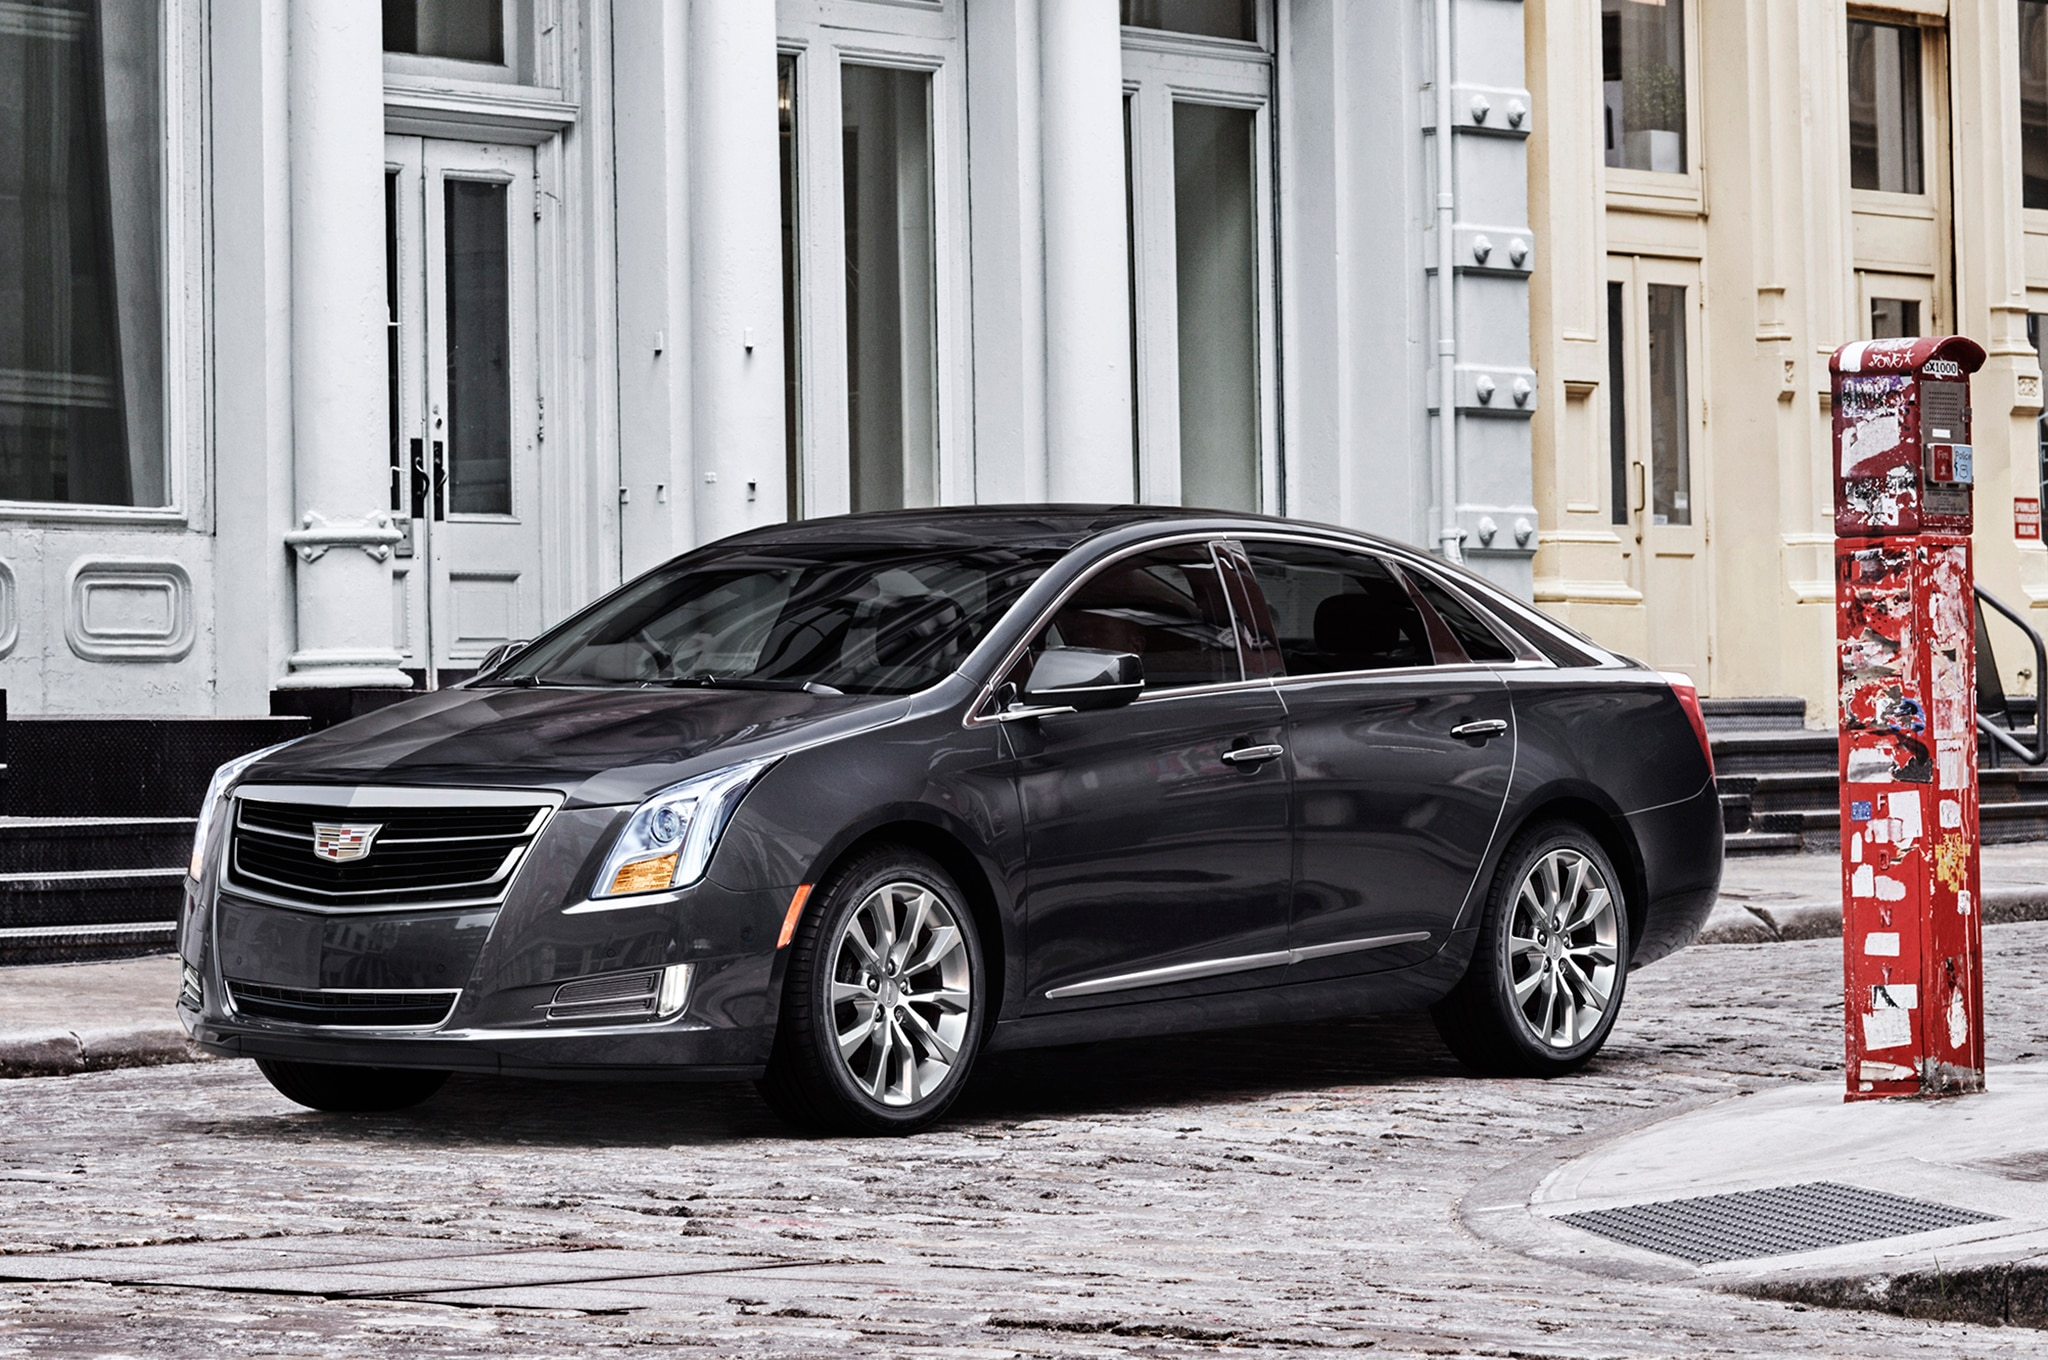 cadillac to introduce super cruise self driving feature by 2017. Black Bedroom Furniture Sets. Home Design Ideas